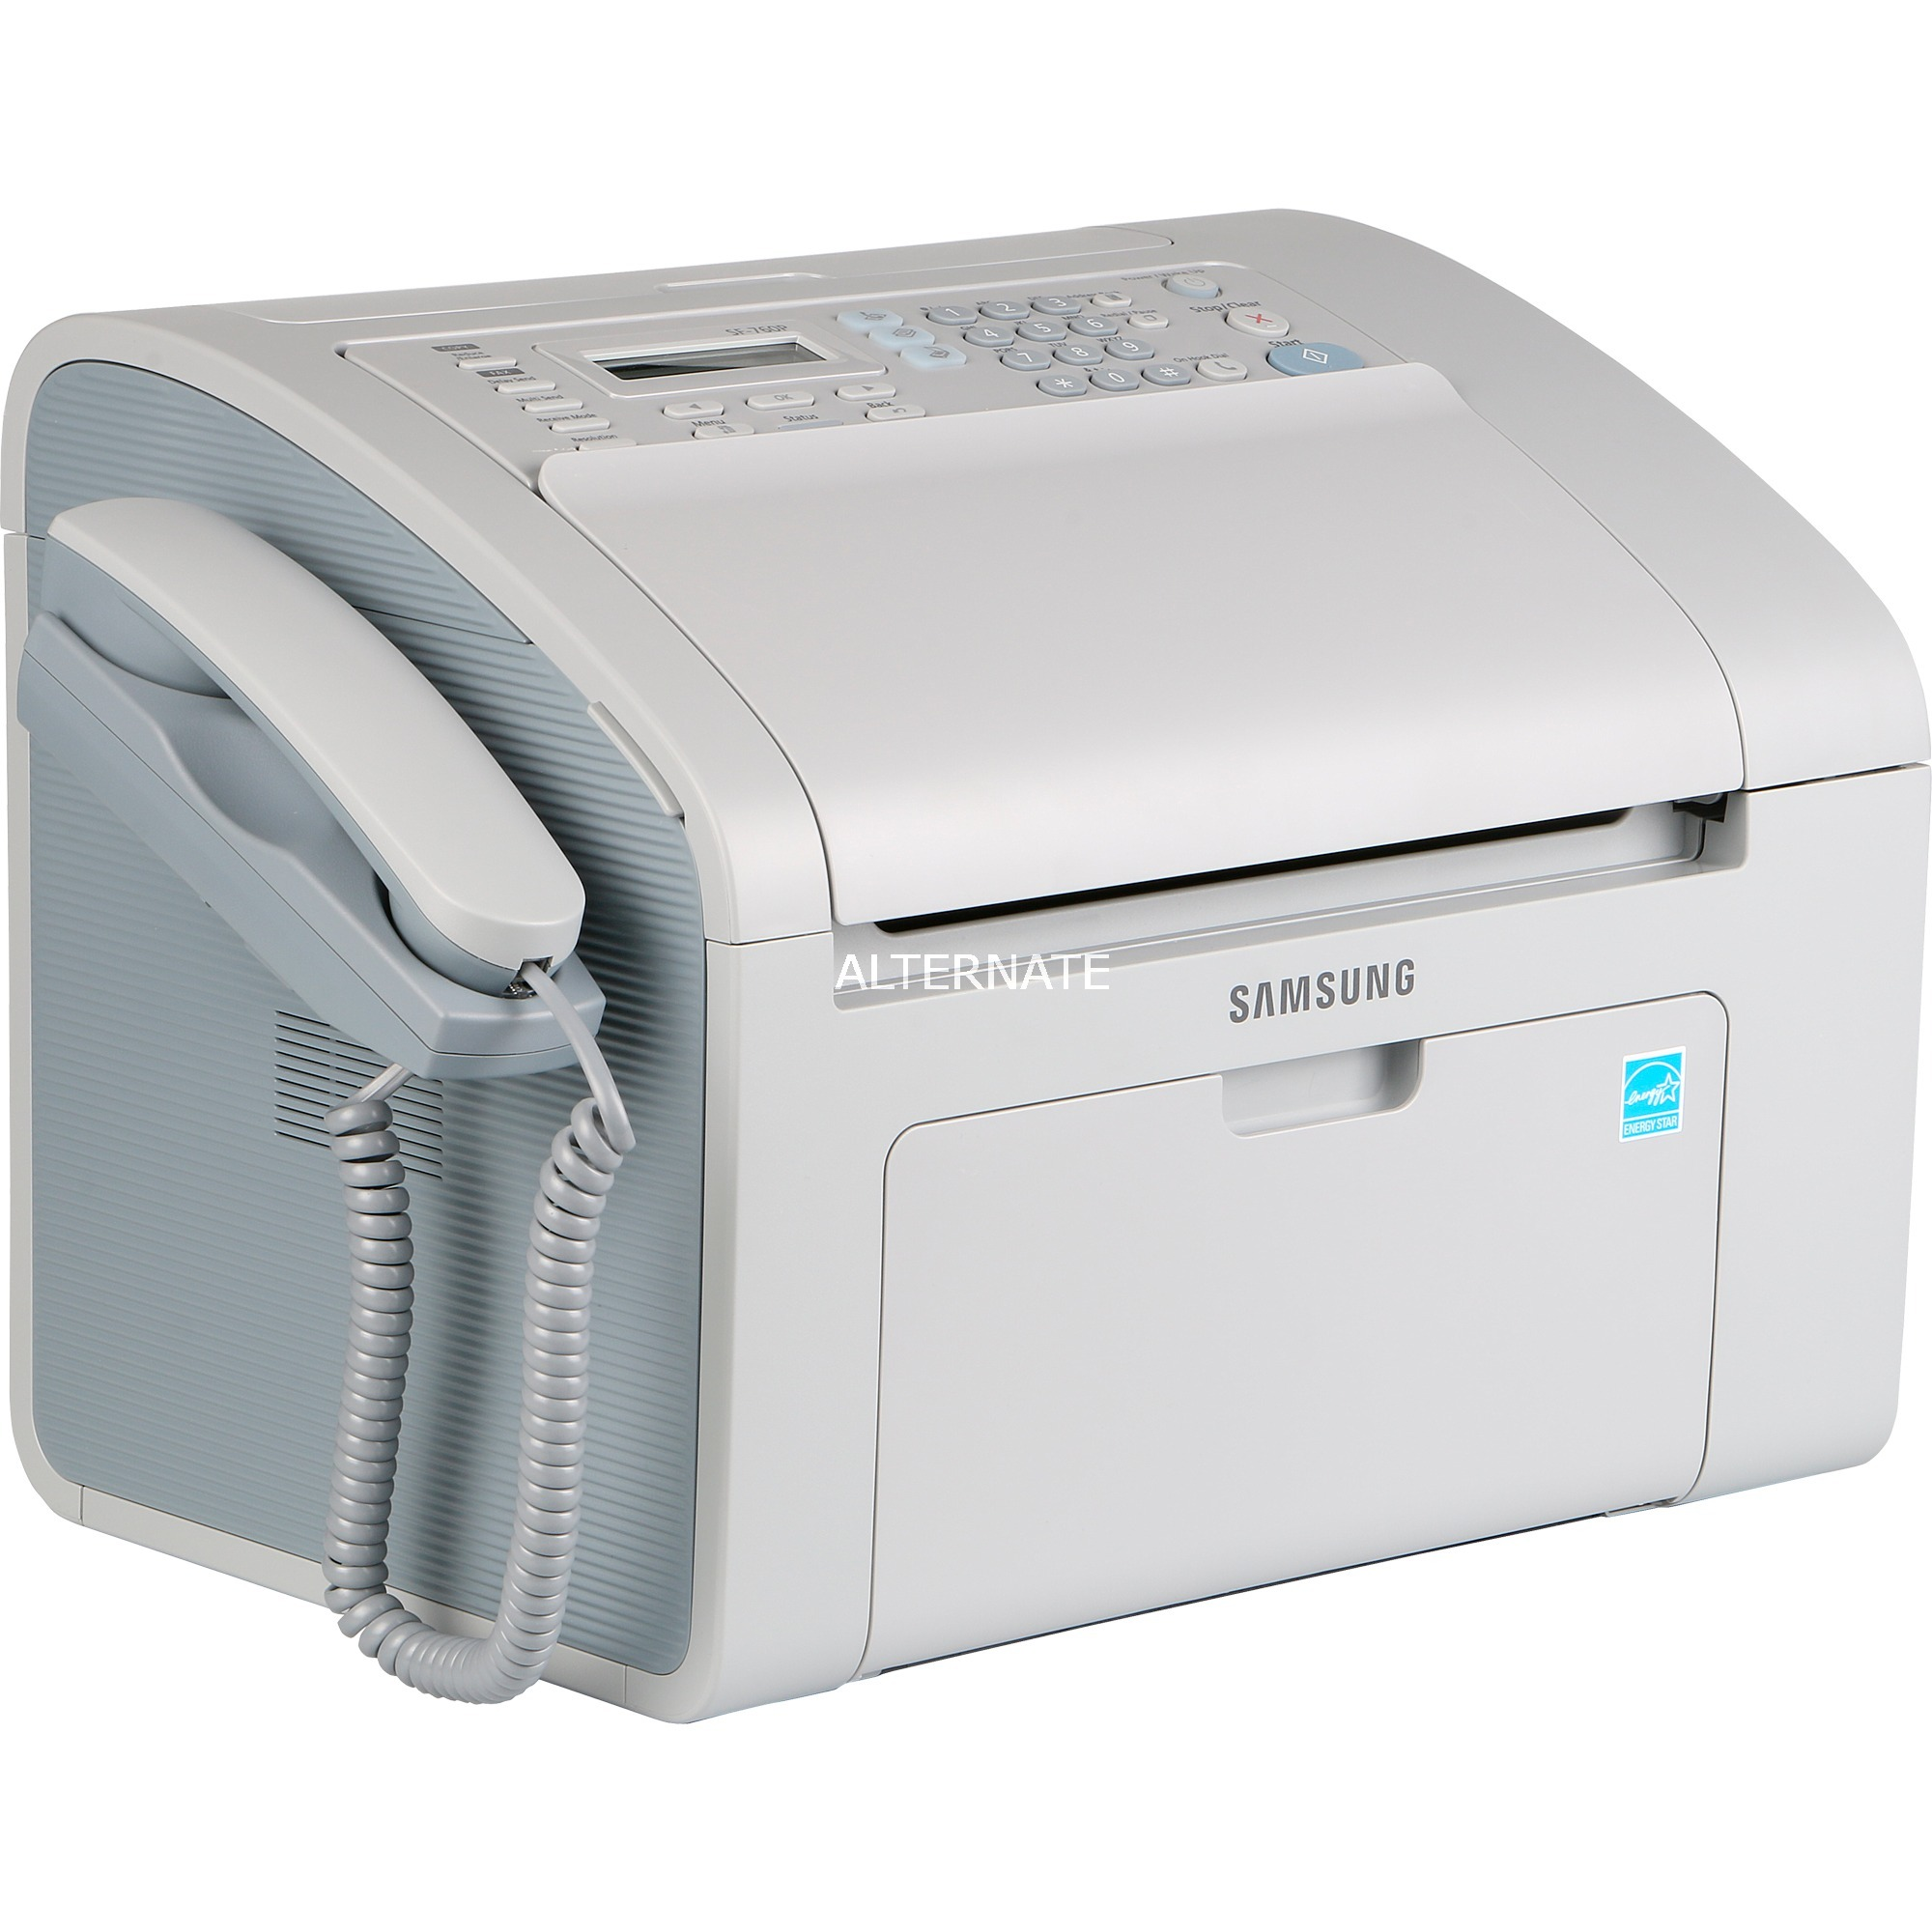 how to send a fax with a samsung 1860 printer